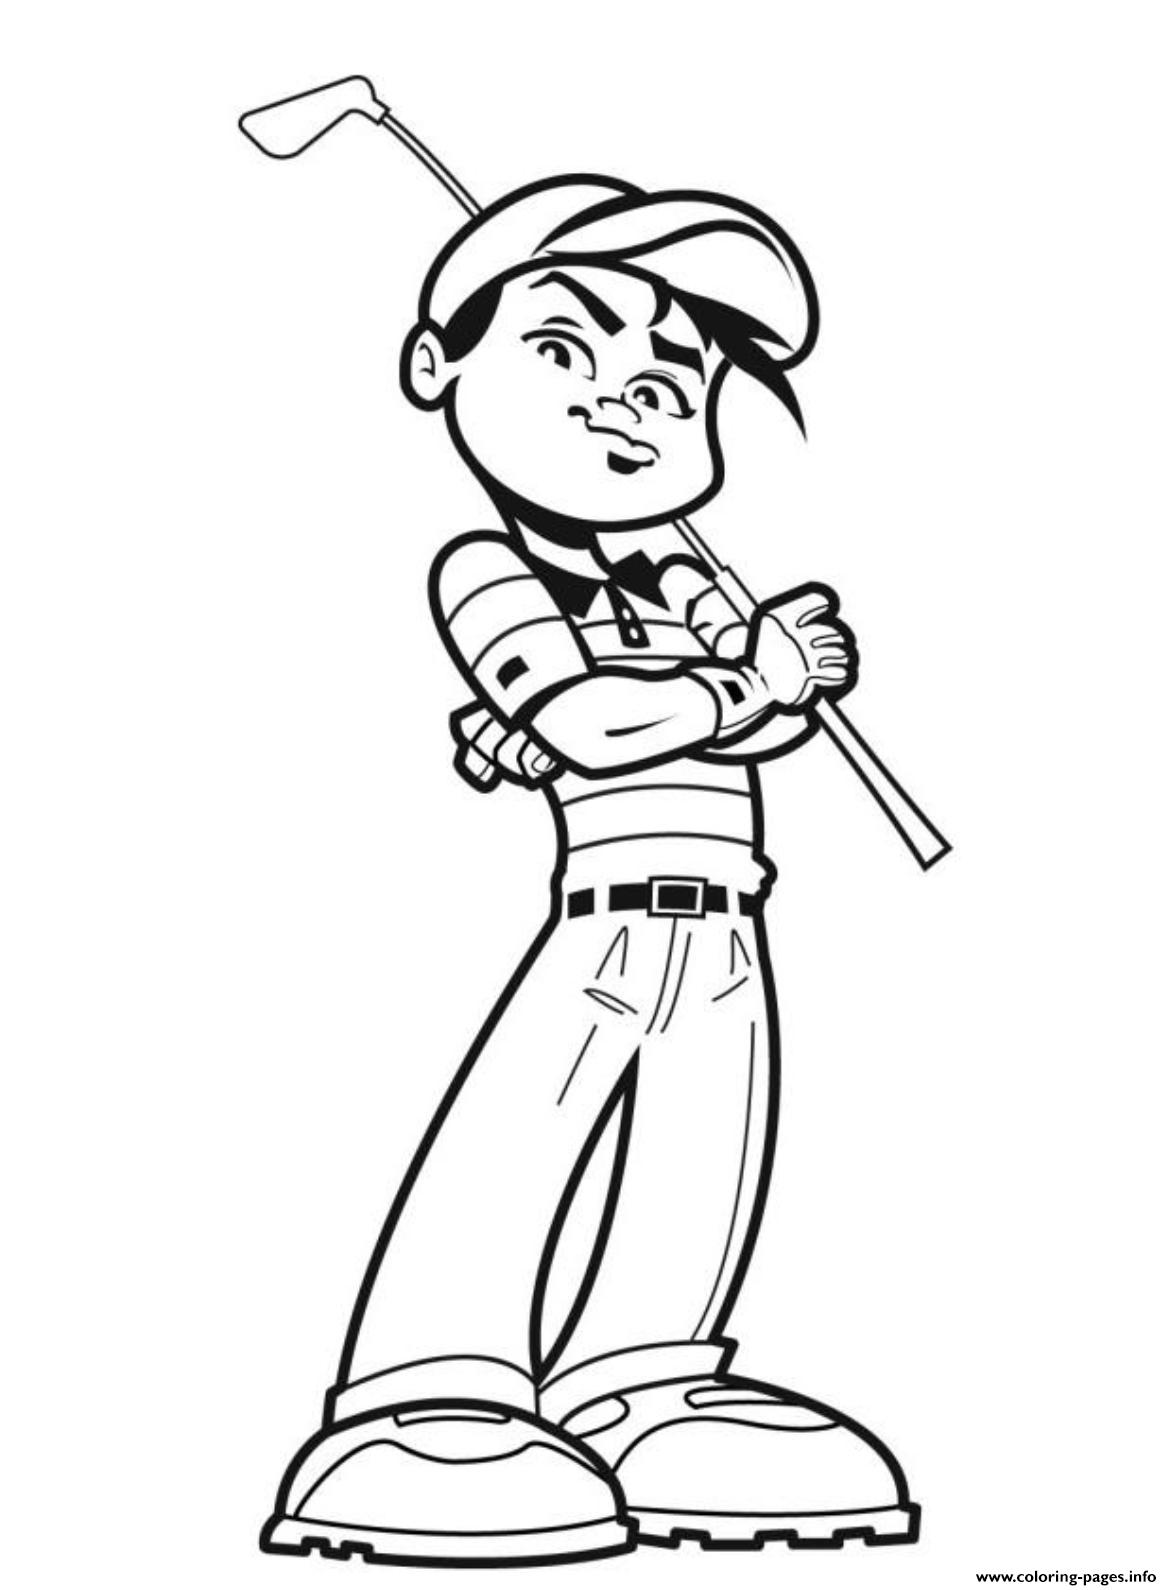 Golf Coloring Pages